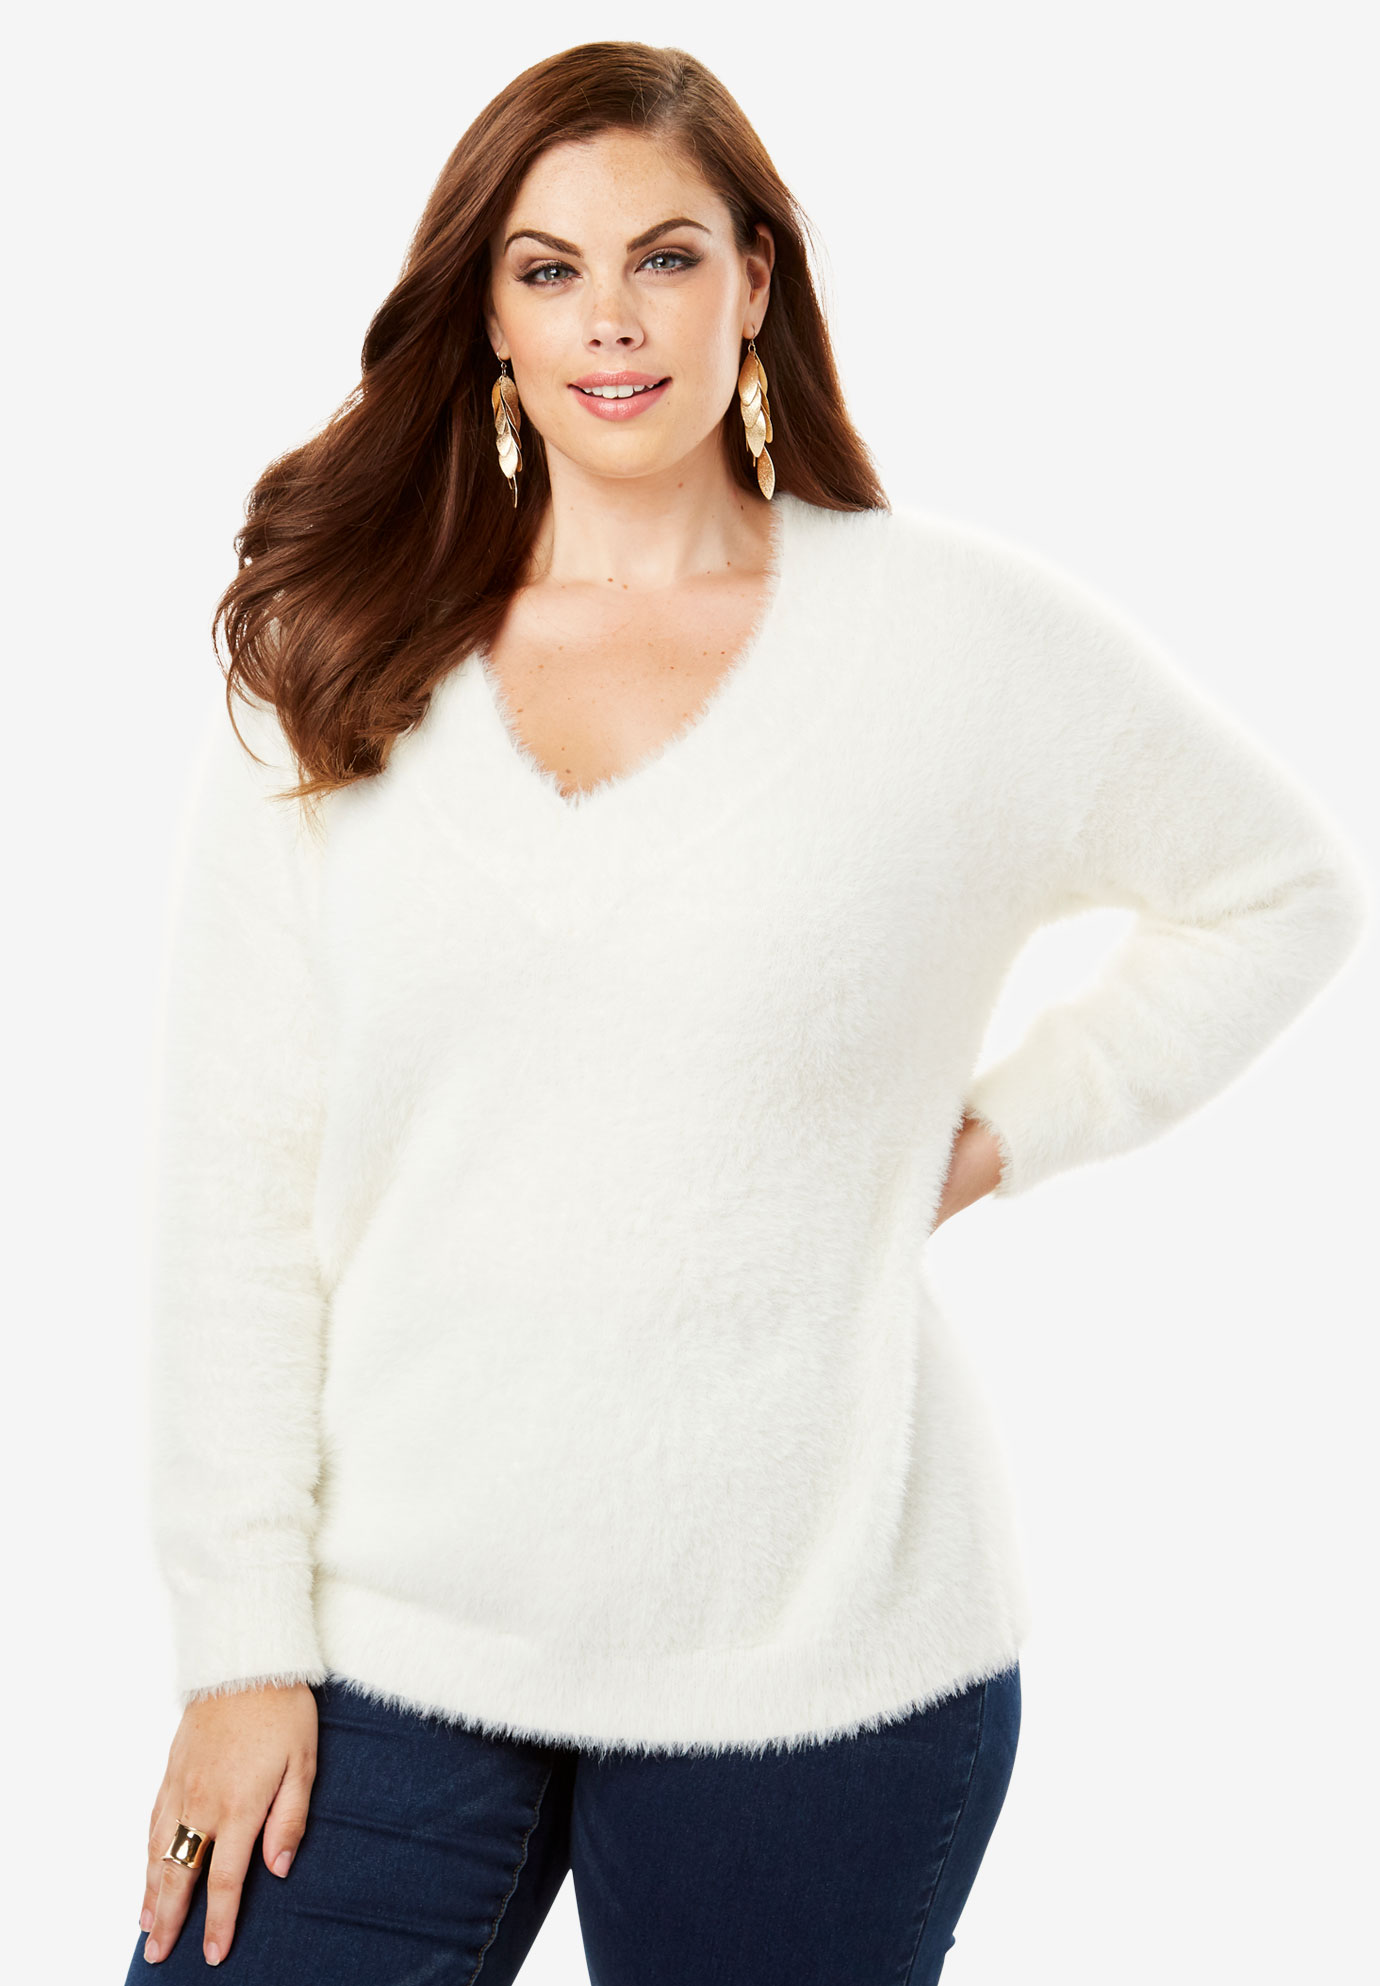 ee02f8d66f607 Textured V-neck Sweater with Blouson Sleeves